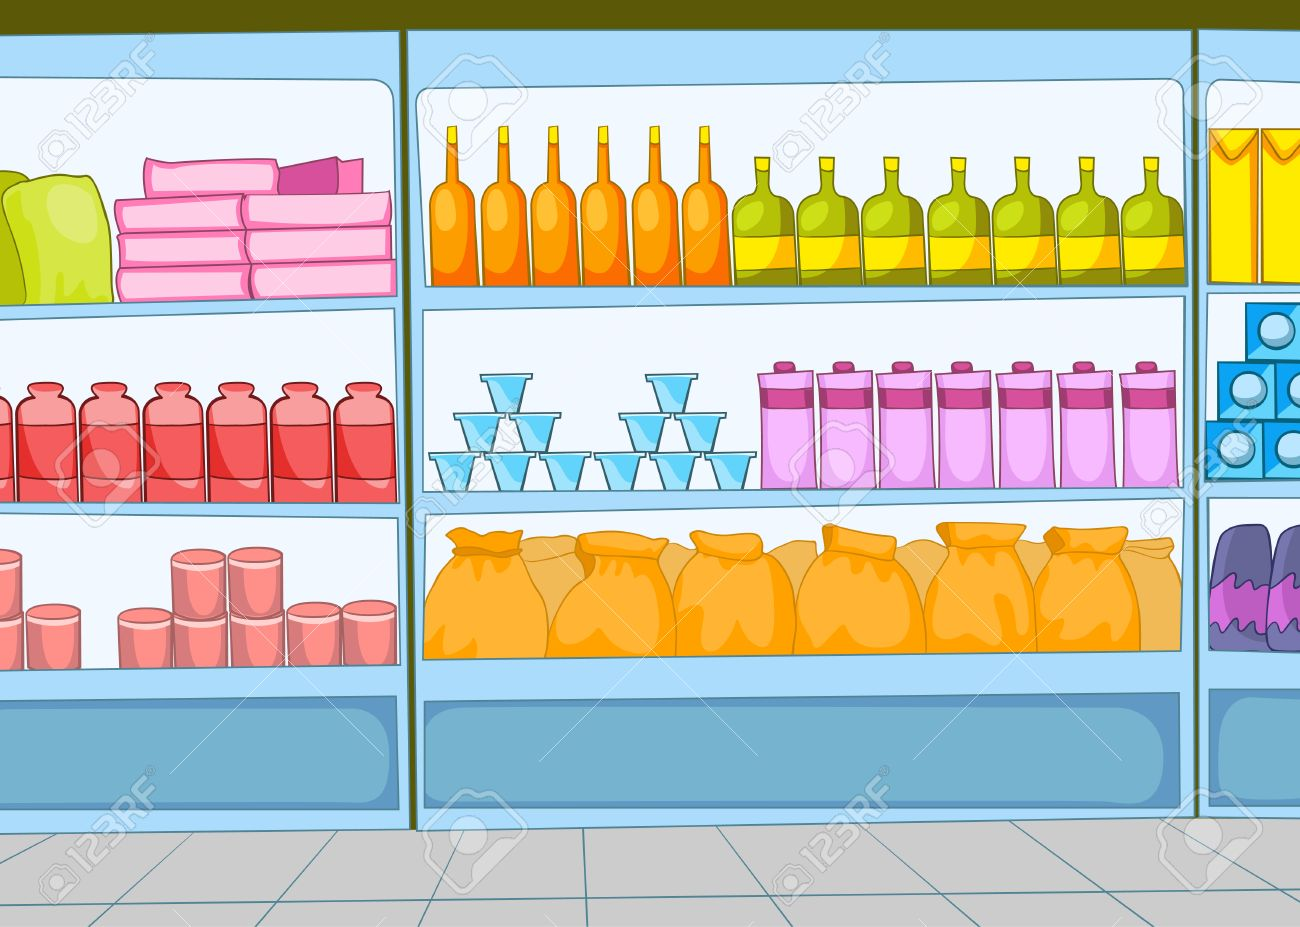 Hand Drawn Cartoon Of Supermarket Interior Colourful Cartoon Stock Photo Picture And Royalty Free Image Image 65118808